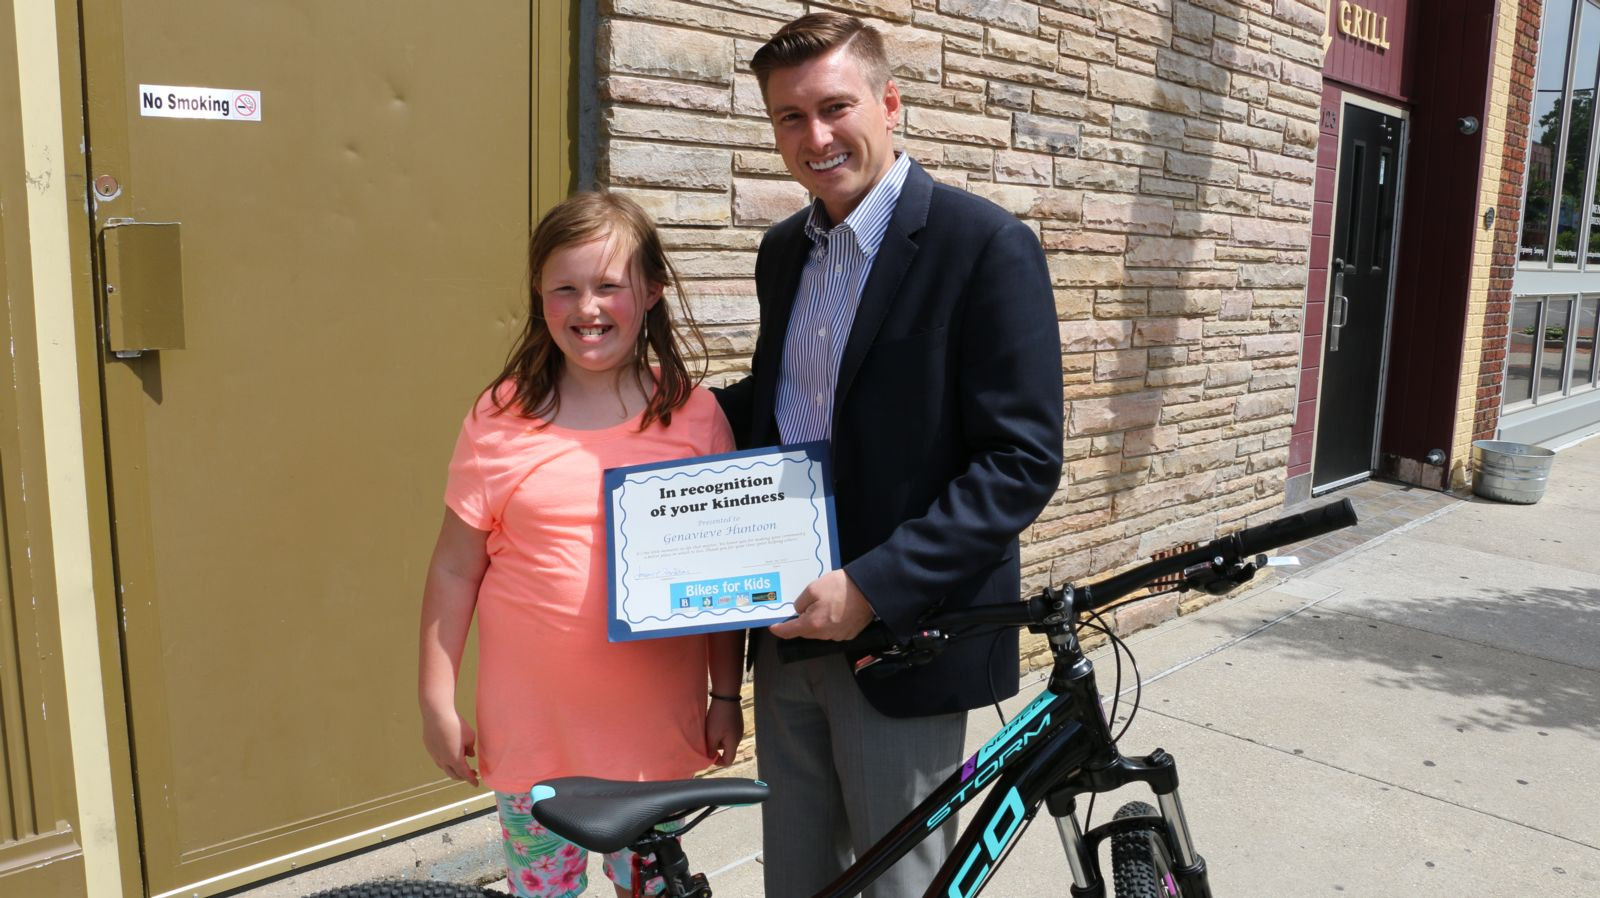 Genavieve Huntoon and David Barberi - Bikes for Kids winner 2017